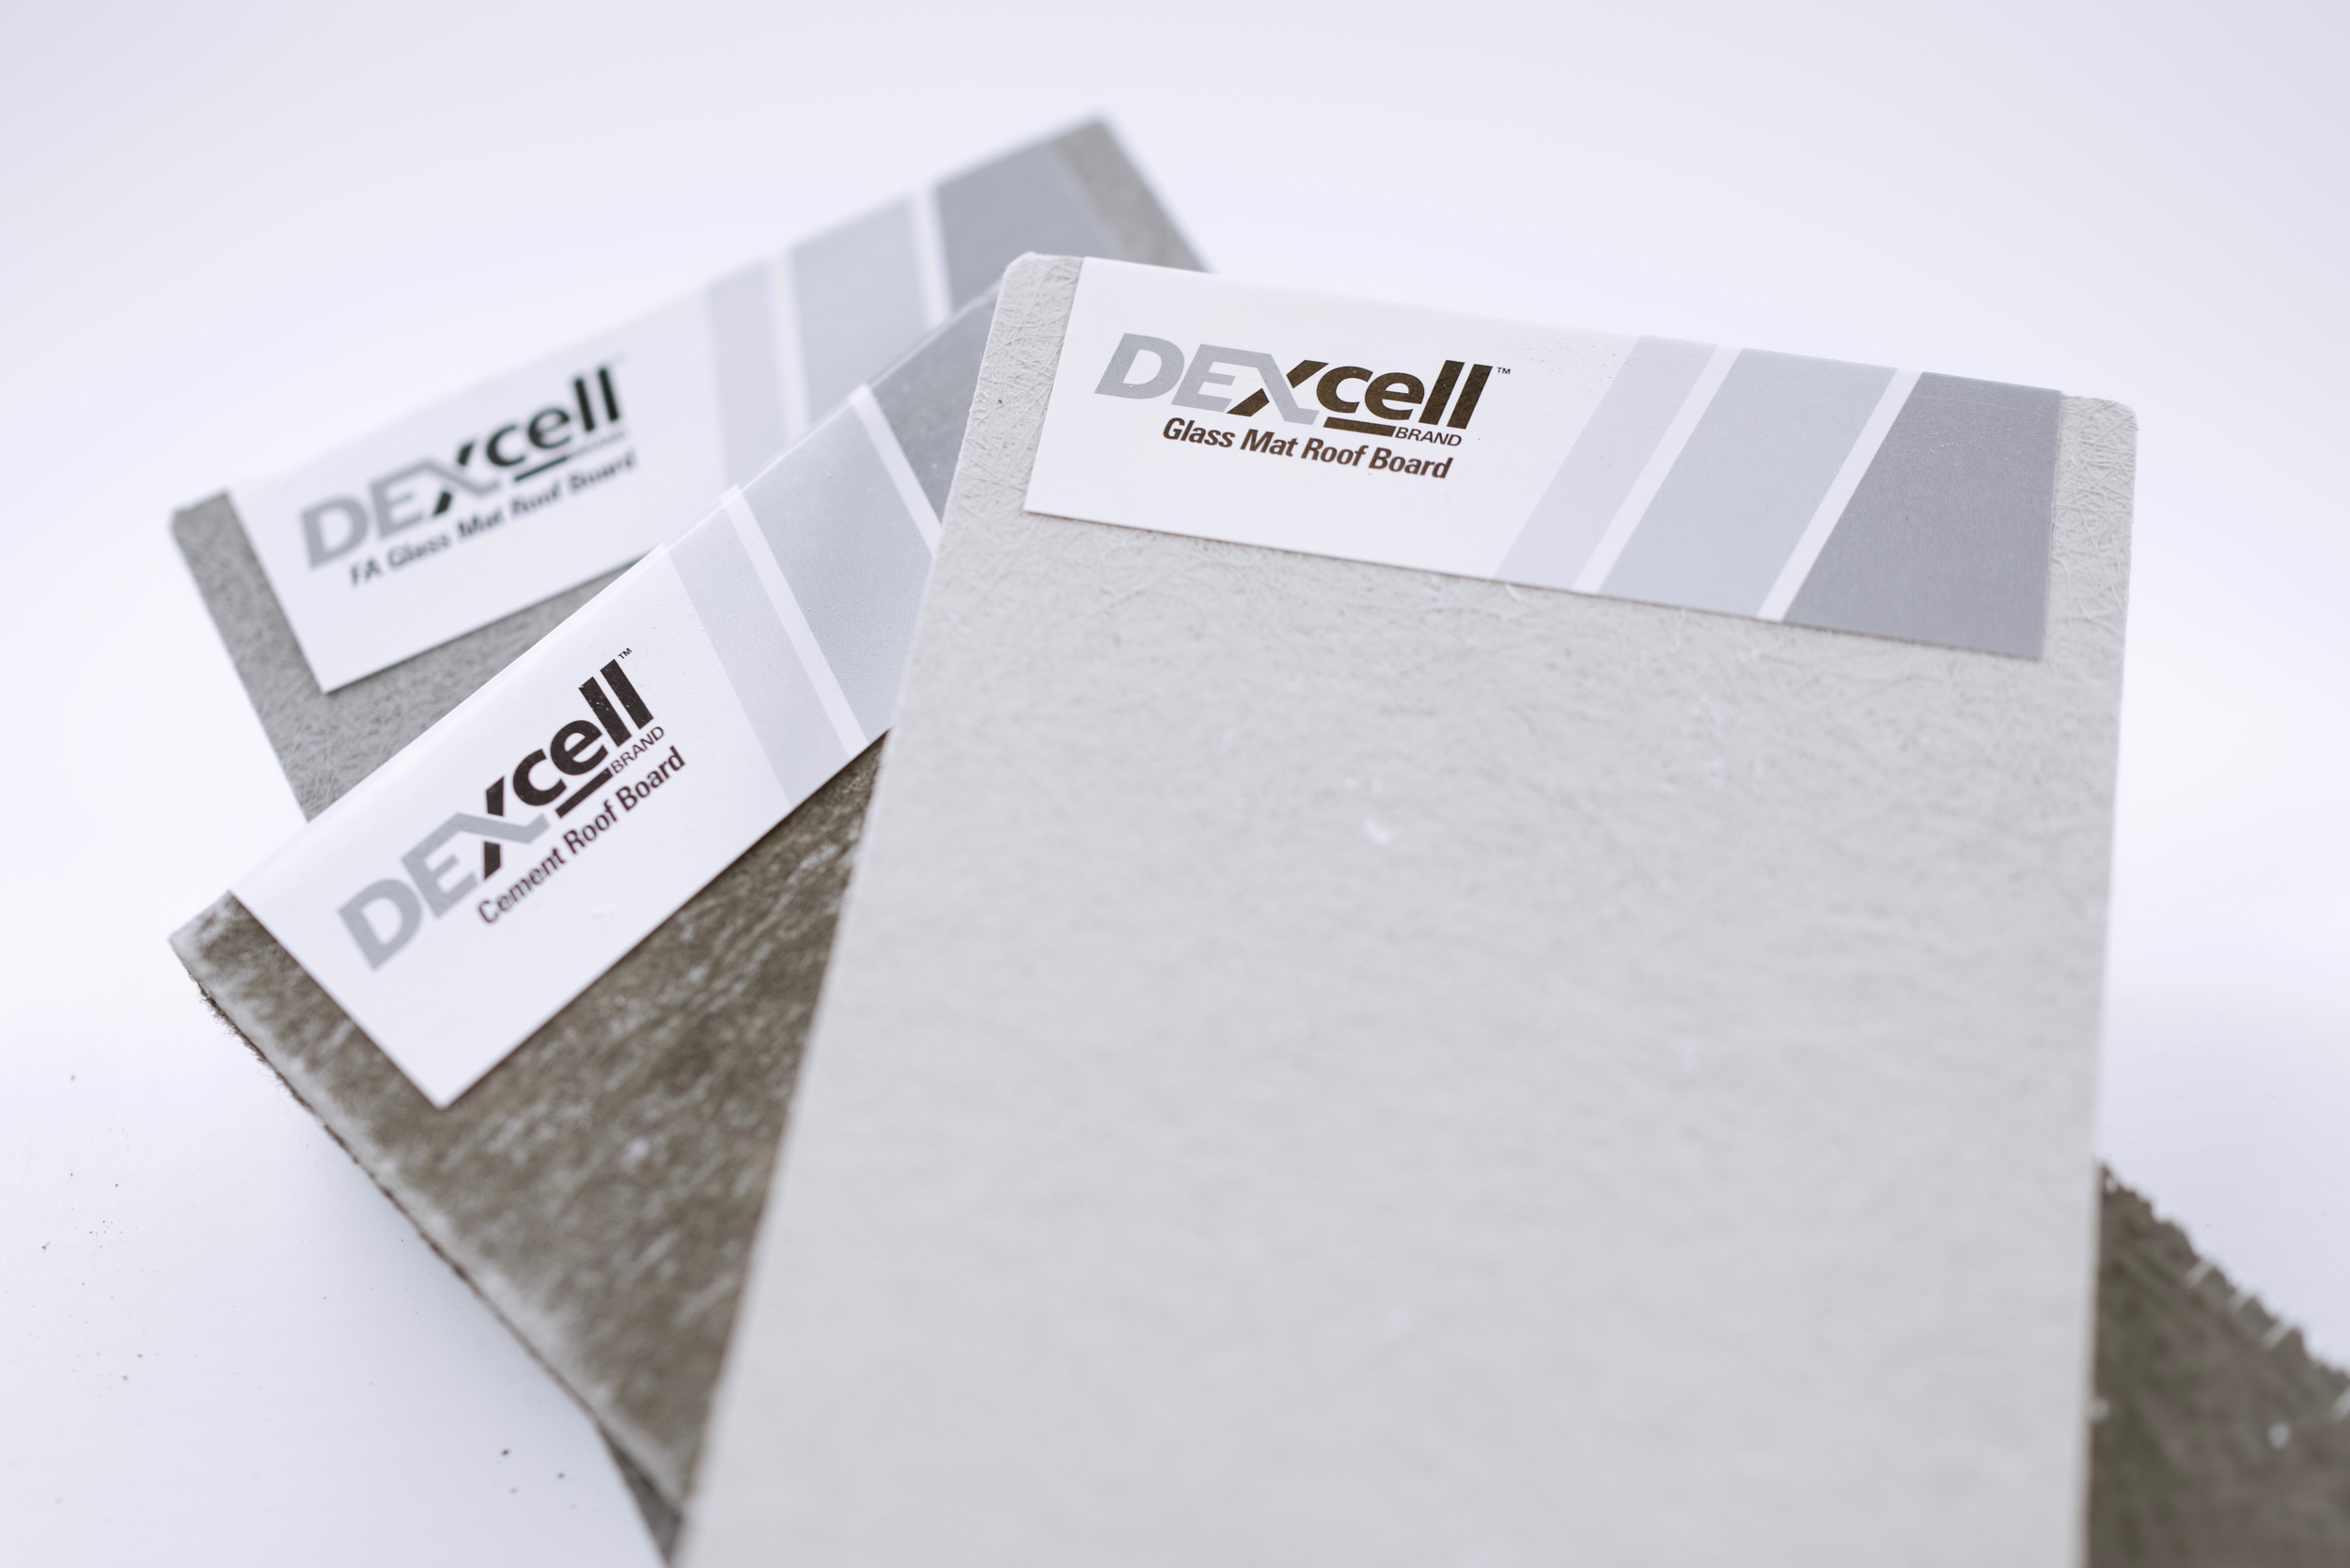 Johns Manville Adds Dexcell 174 To The Cover Board Product